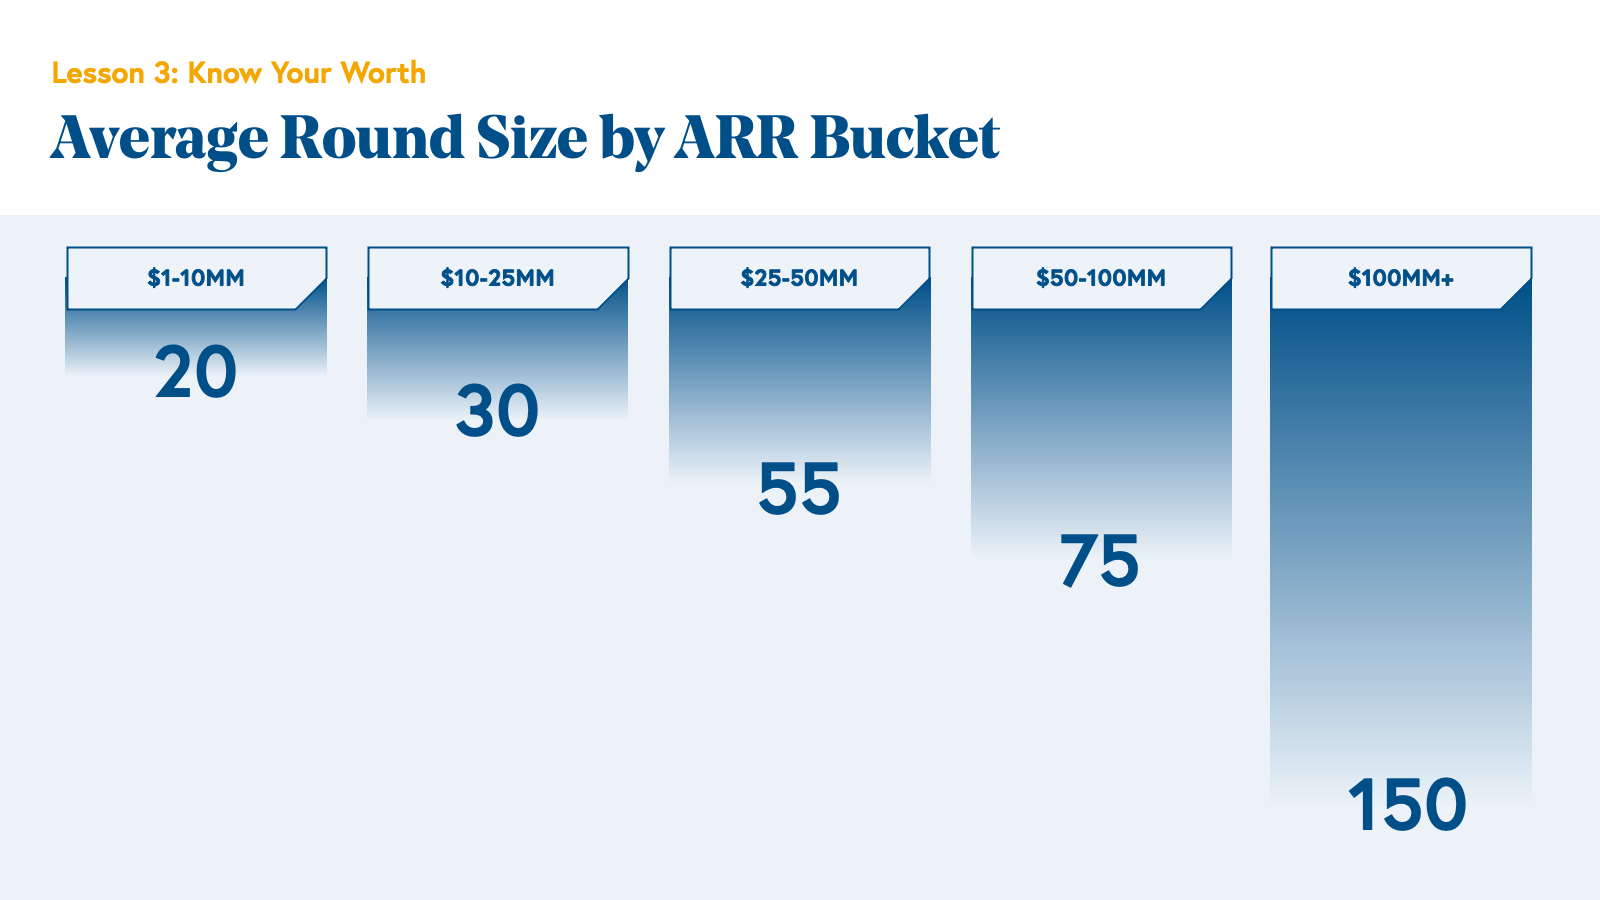 Average Round Size by ARR Bucket Chart